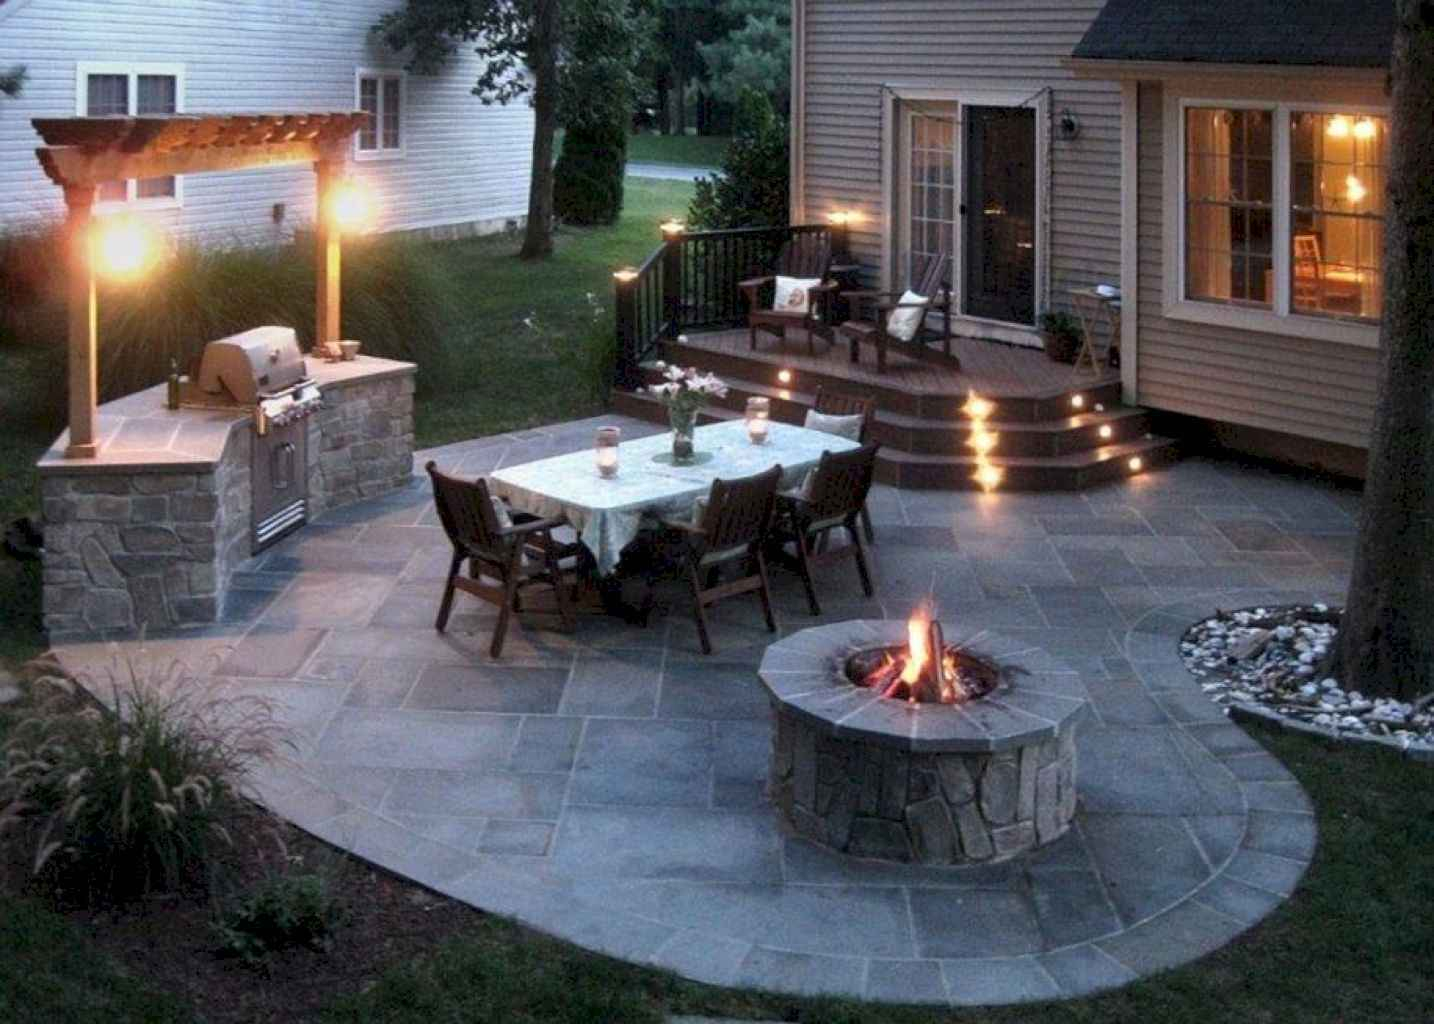 27 Awesome Backyard Patio Deck Ideas Decoreditor in Backyard Patio Deck Ideas